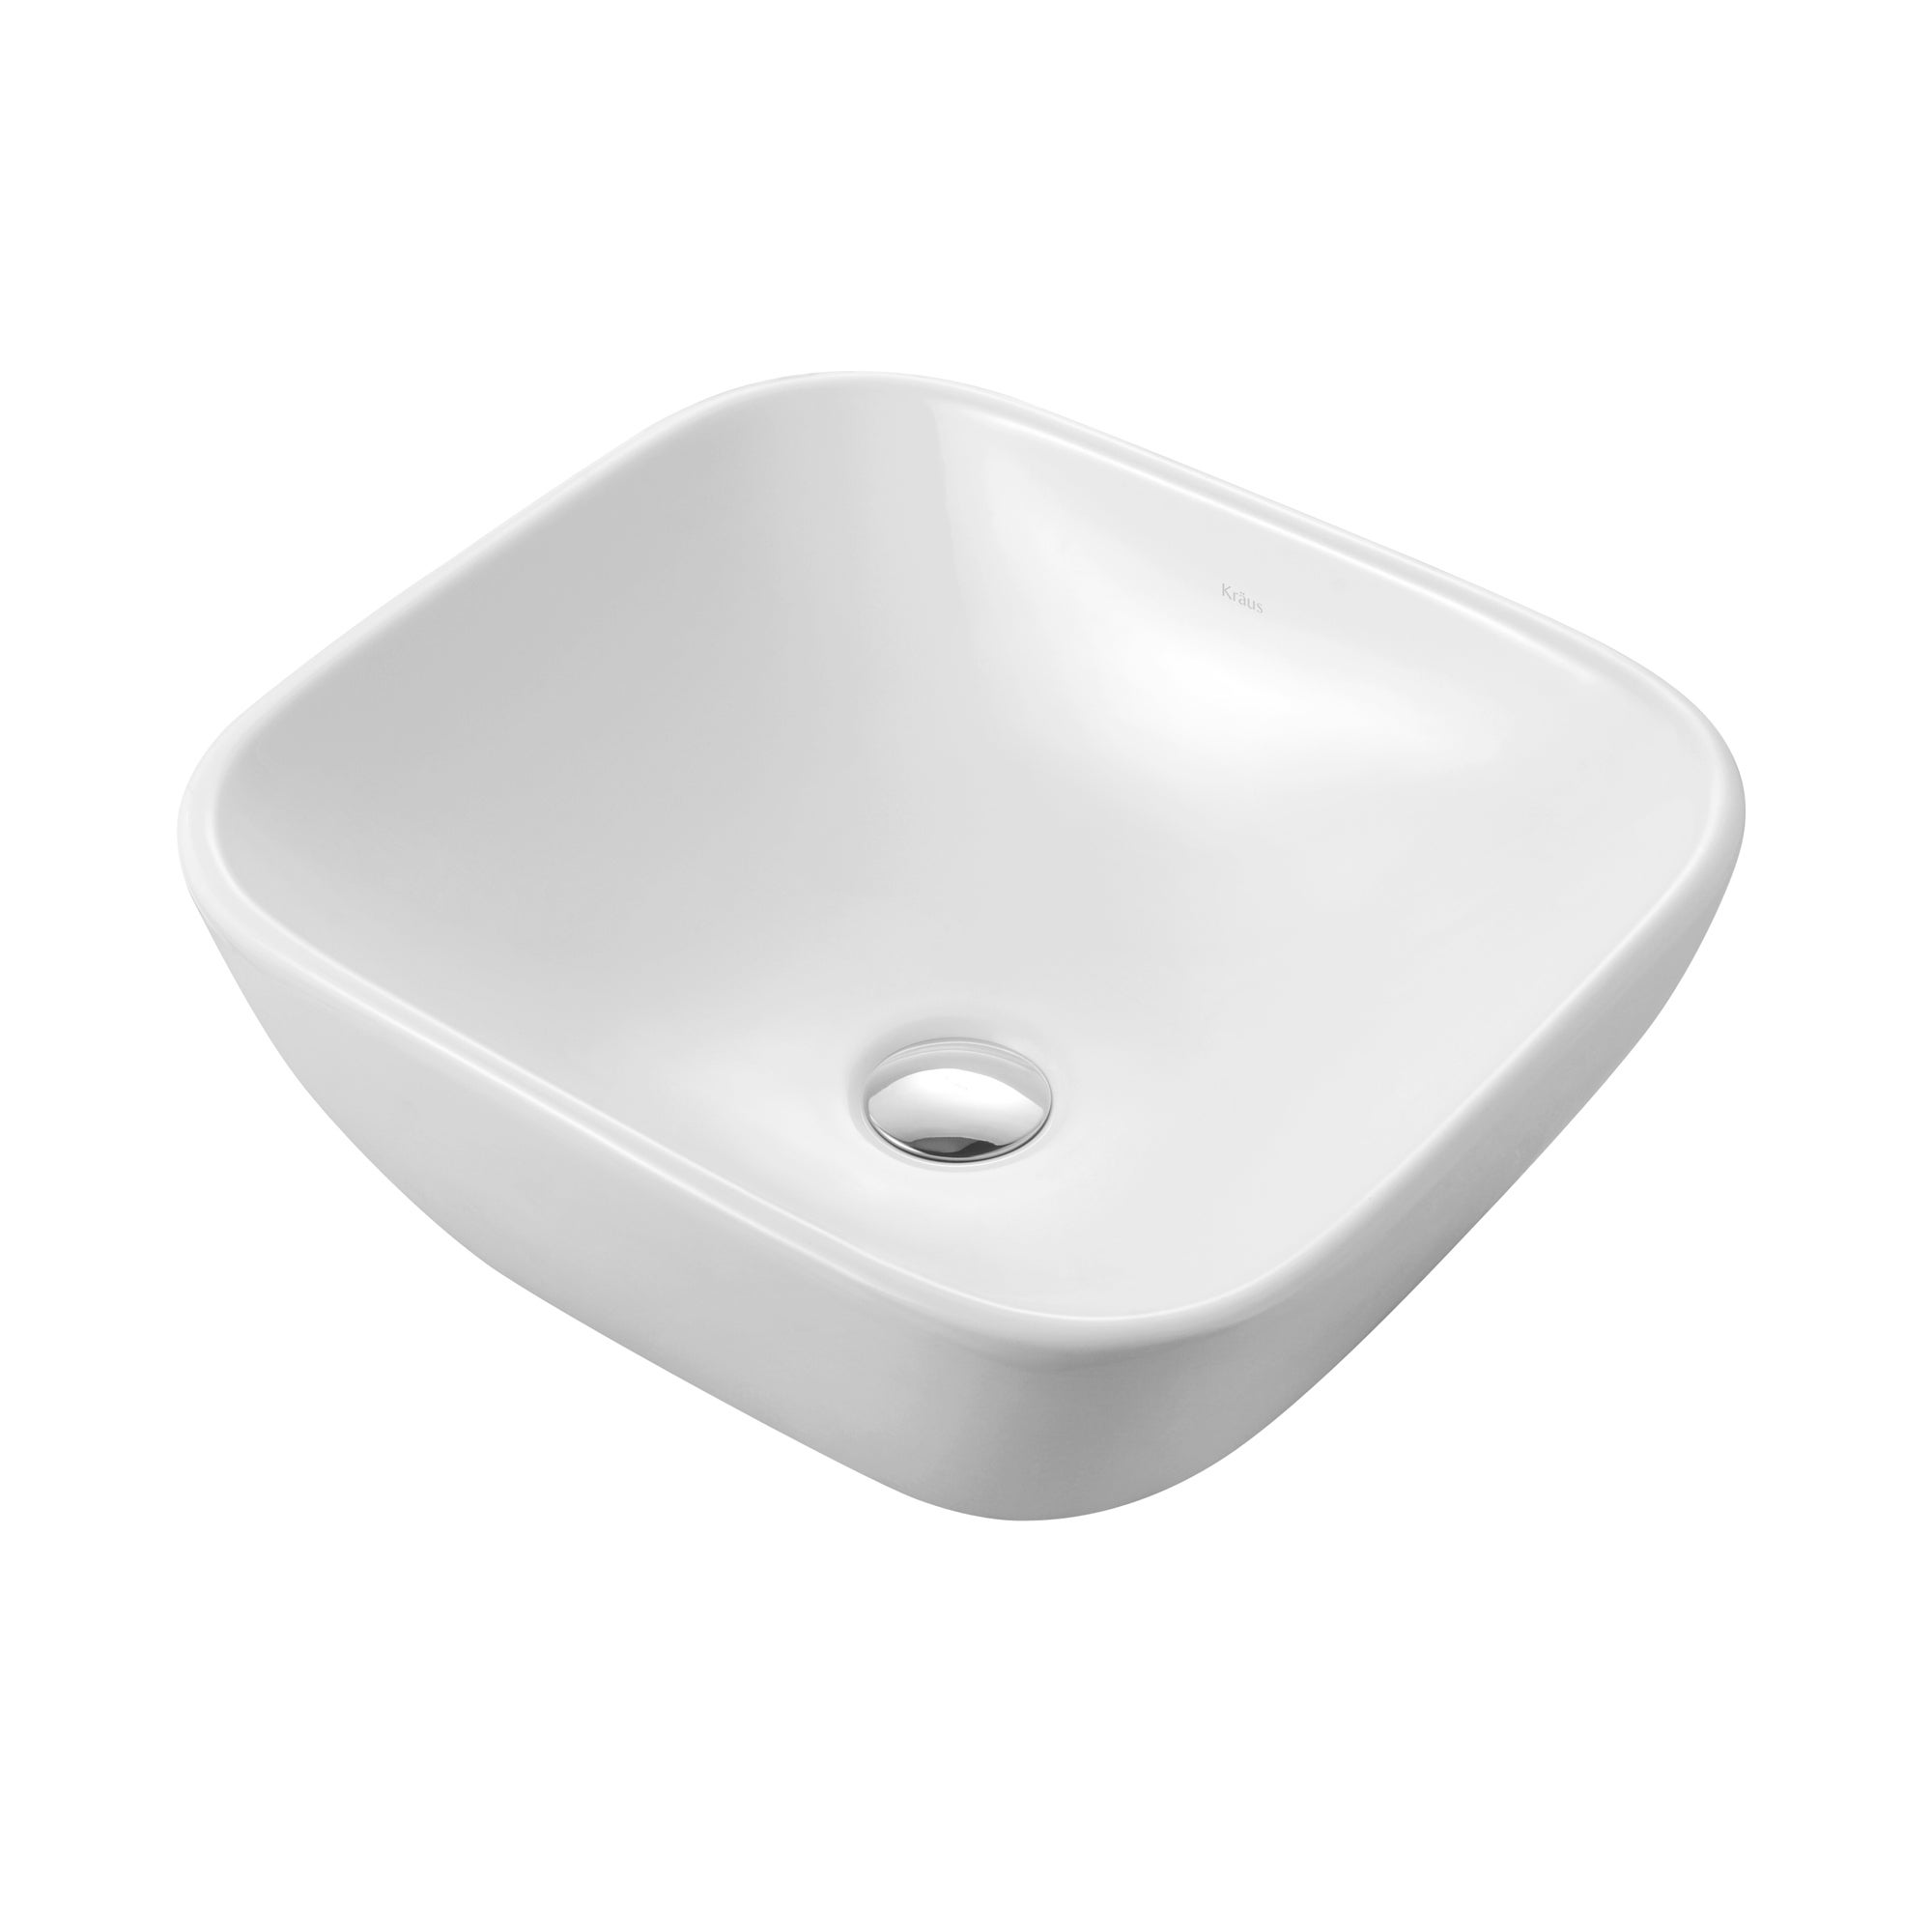 Kraus White Rectangular Ceramic Vessel Bathroom Sink